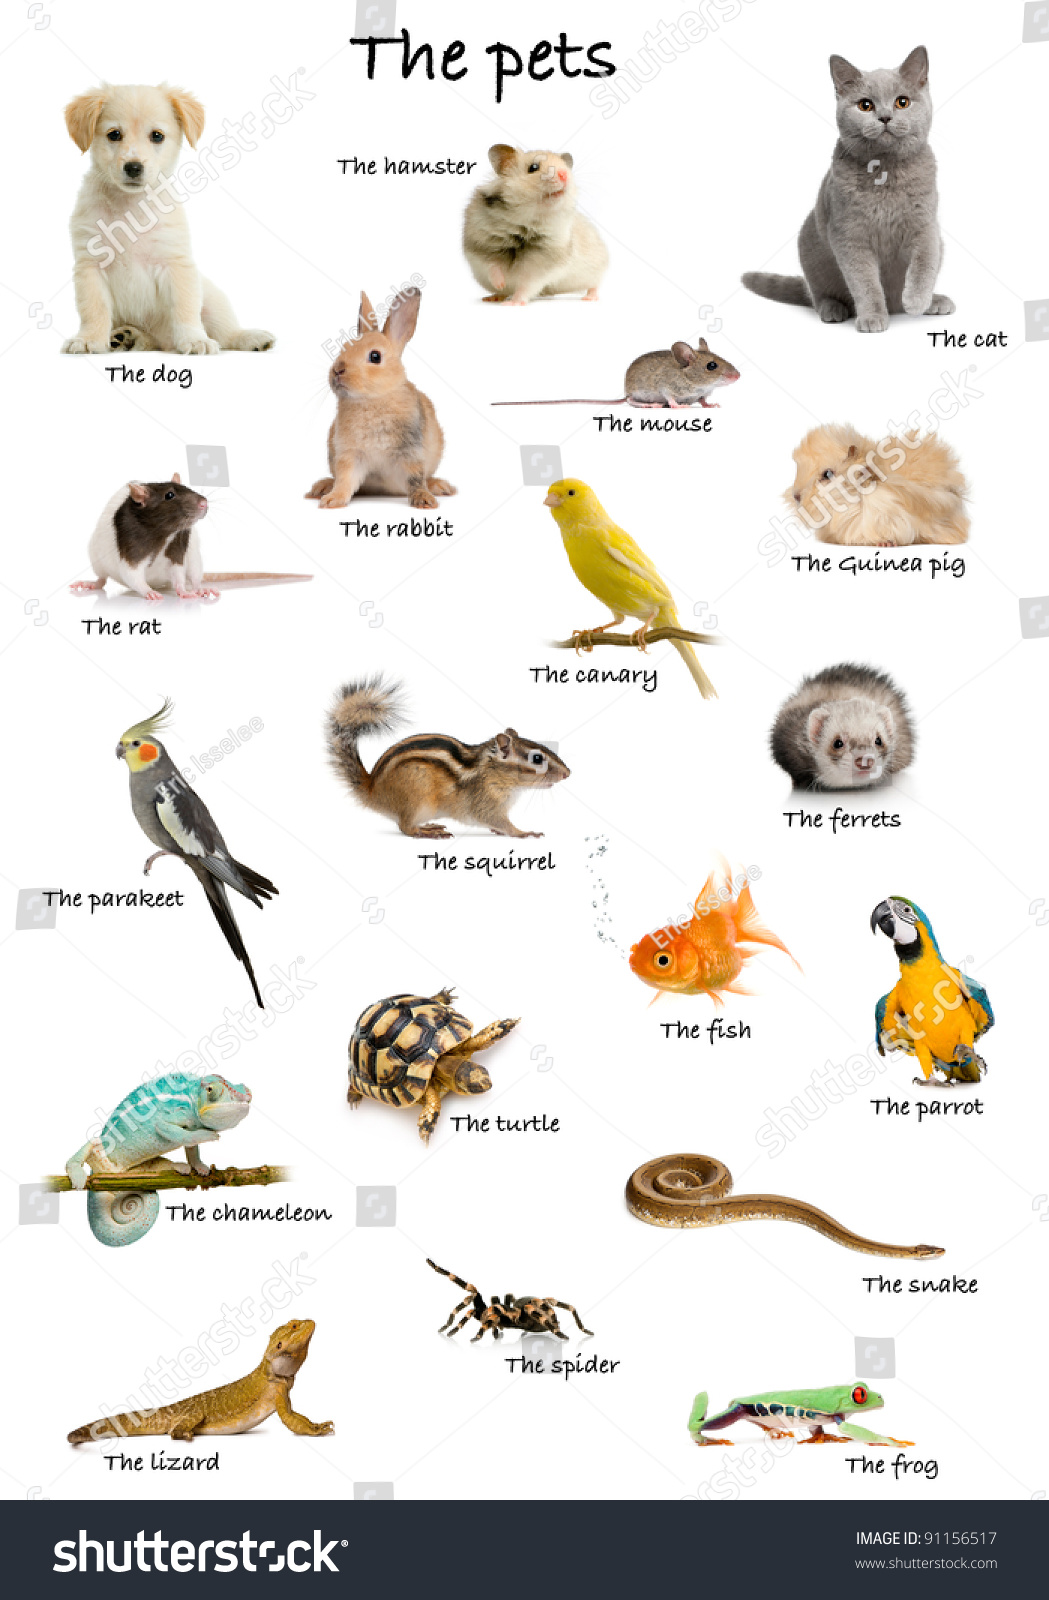 Pet Animals Images With Names